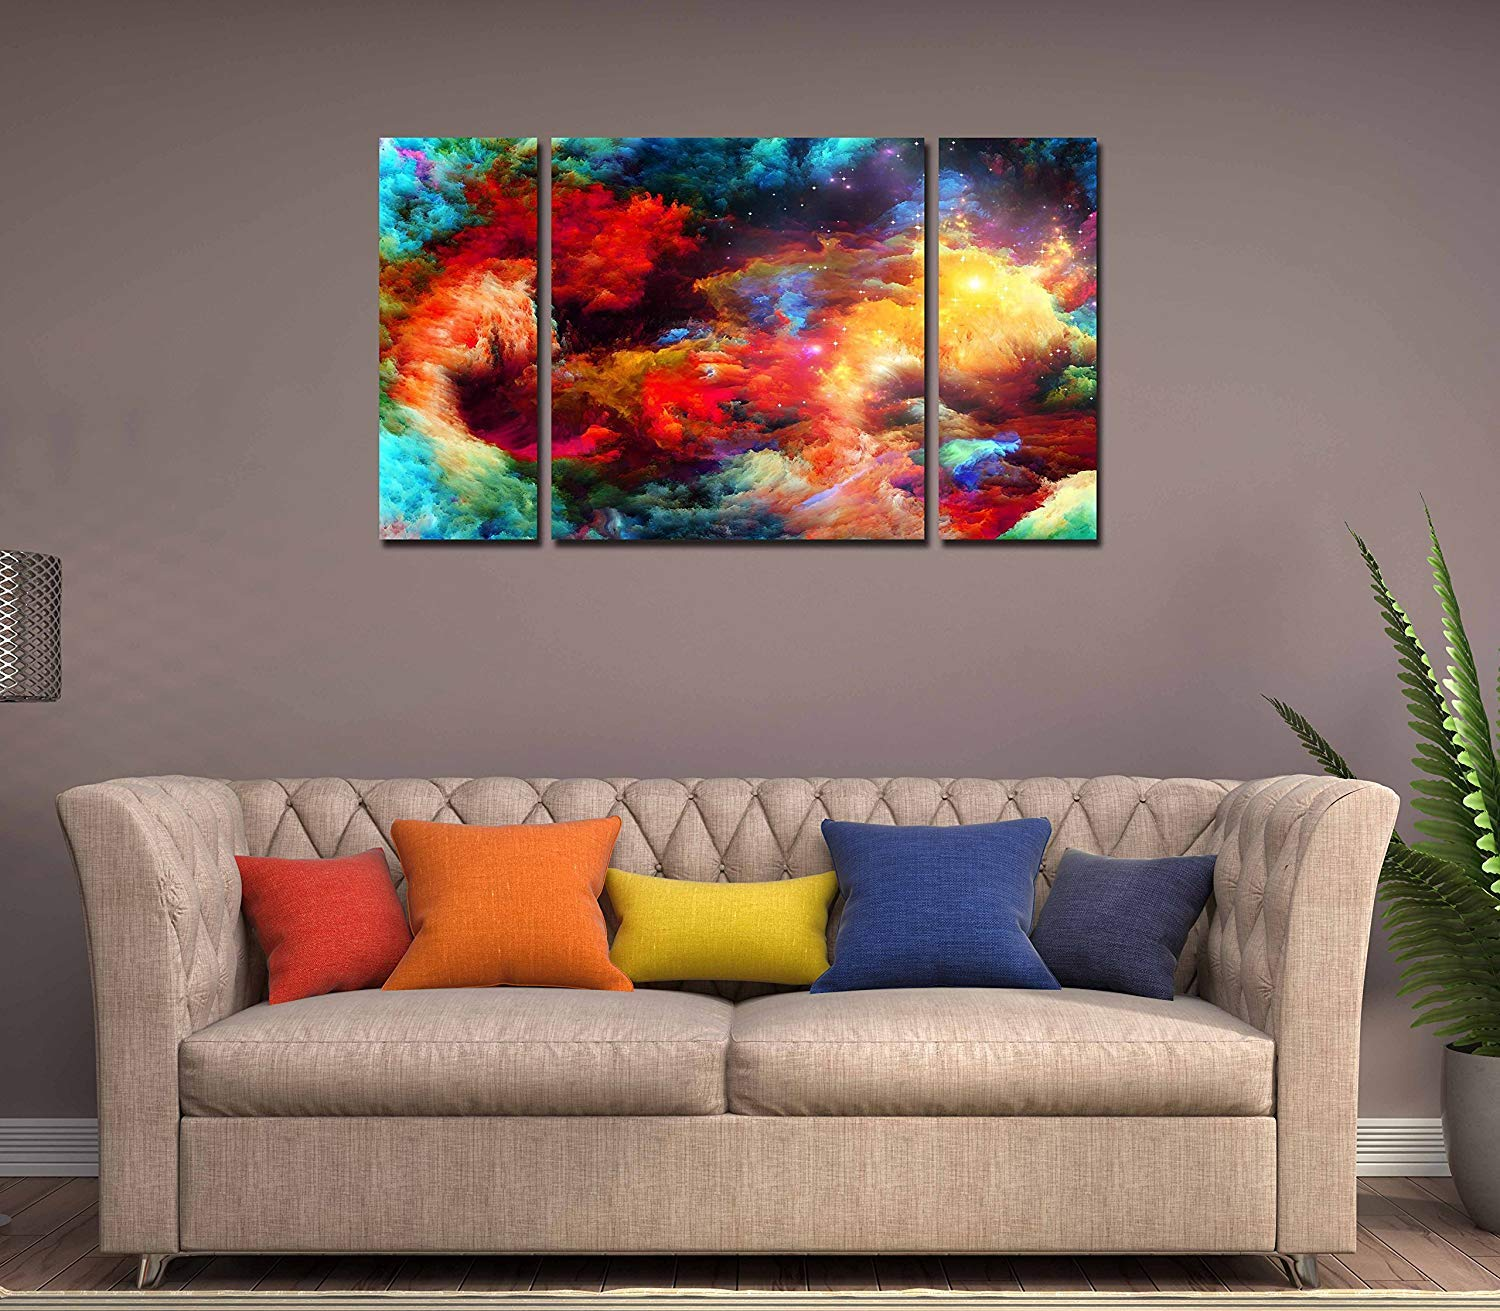 Rabhya International 3 Piece Abstract Wall Art Colorful Canvas Wooden Framed  Painting- Size(24x14 inch)-D-3: Amazon.in: Home & Kitchen